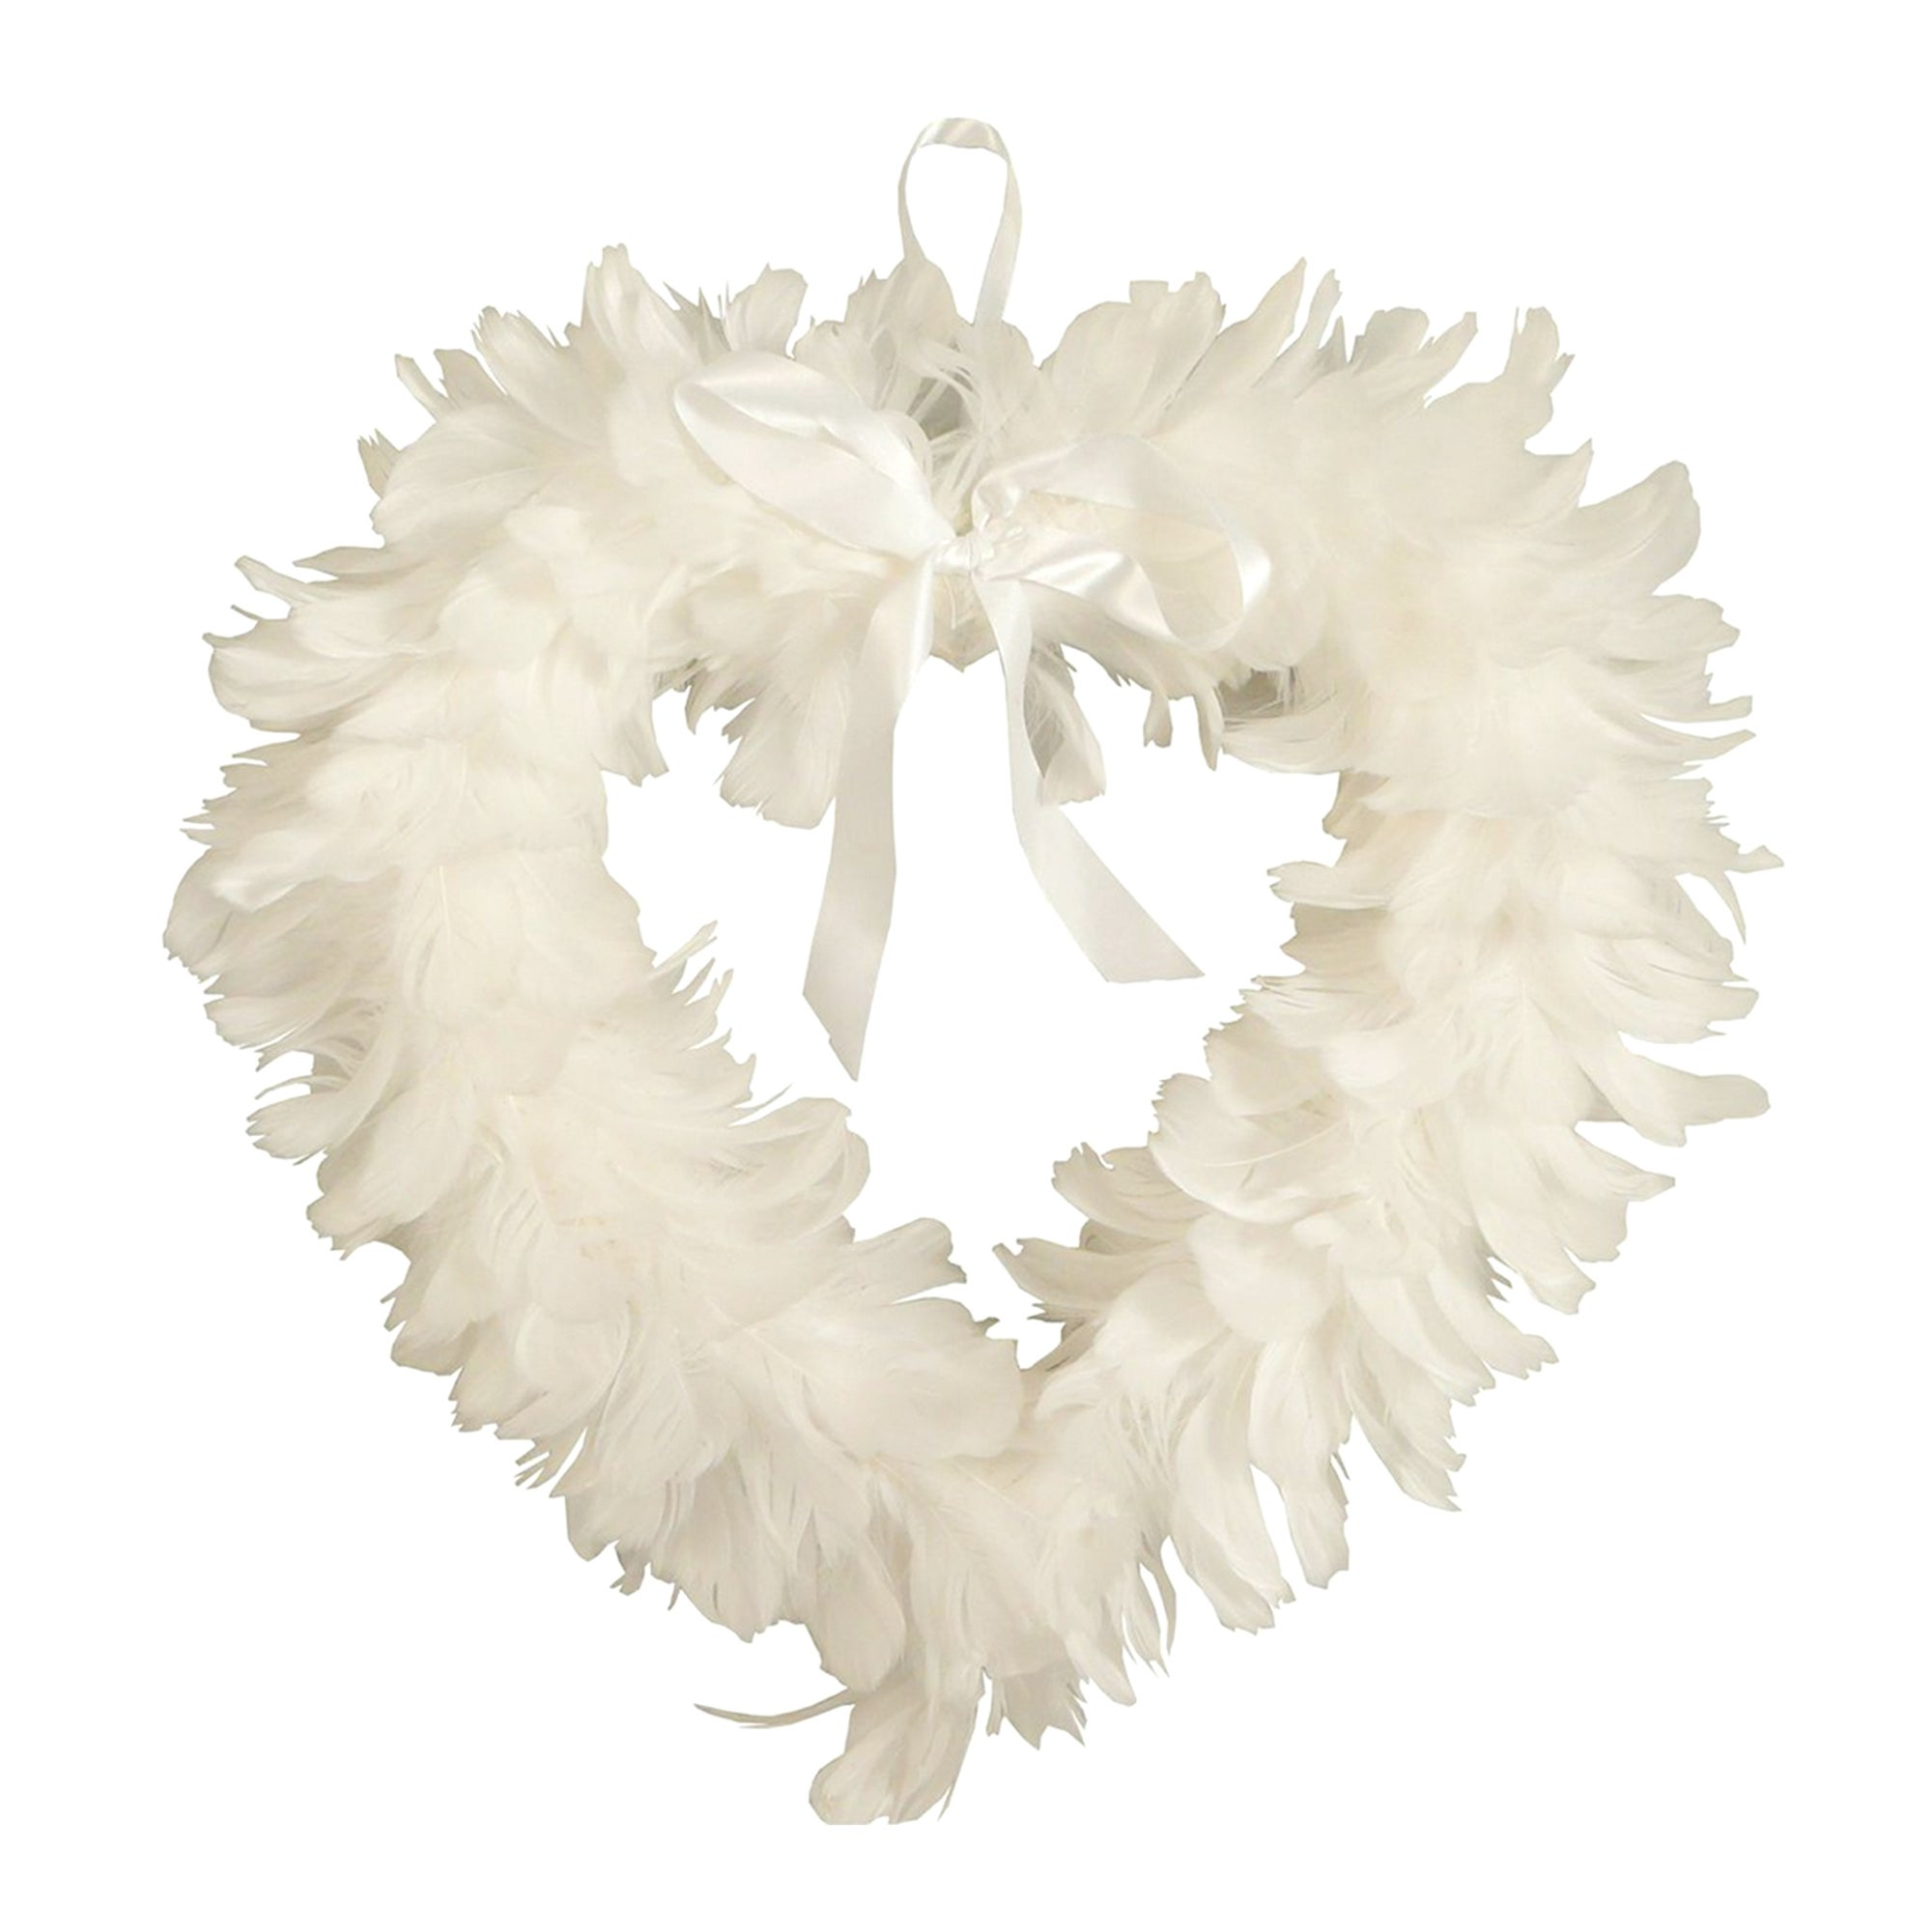 Feather Heart Wreath 38cm White